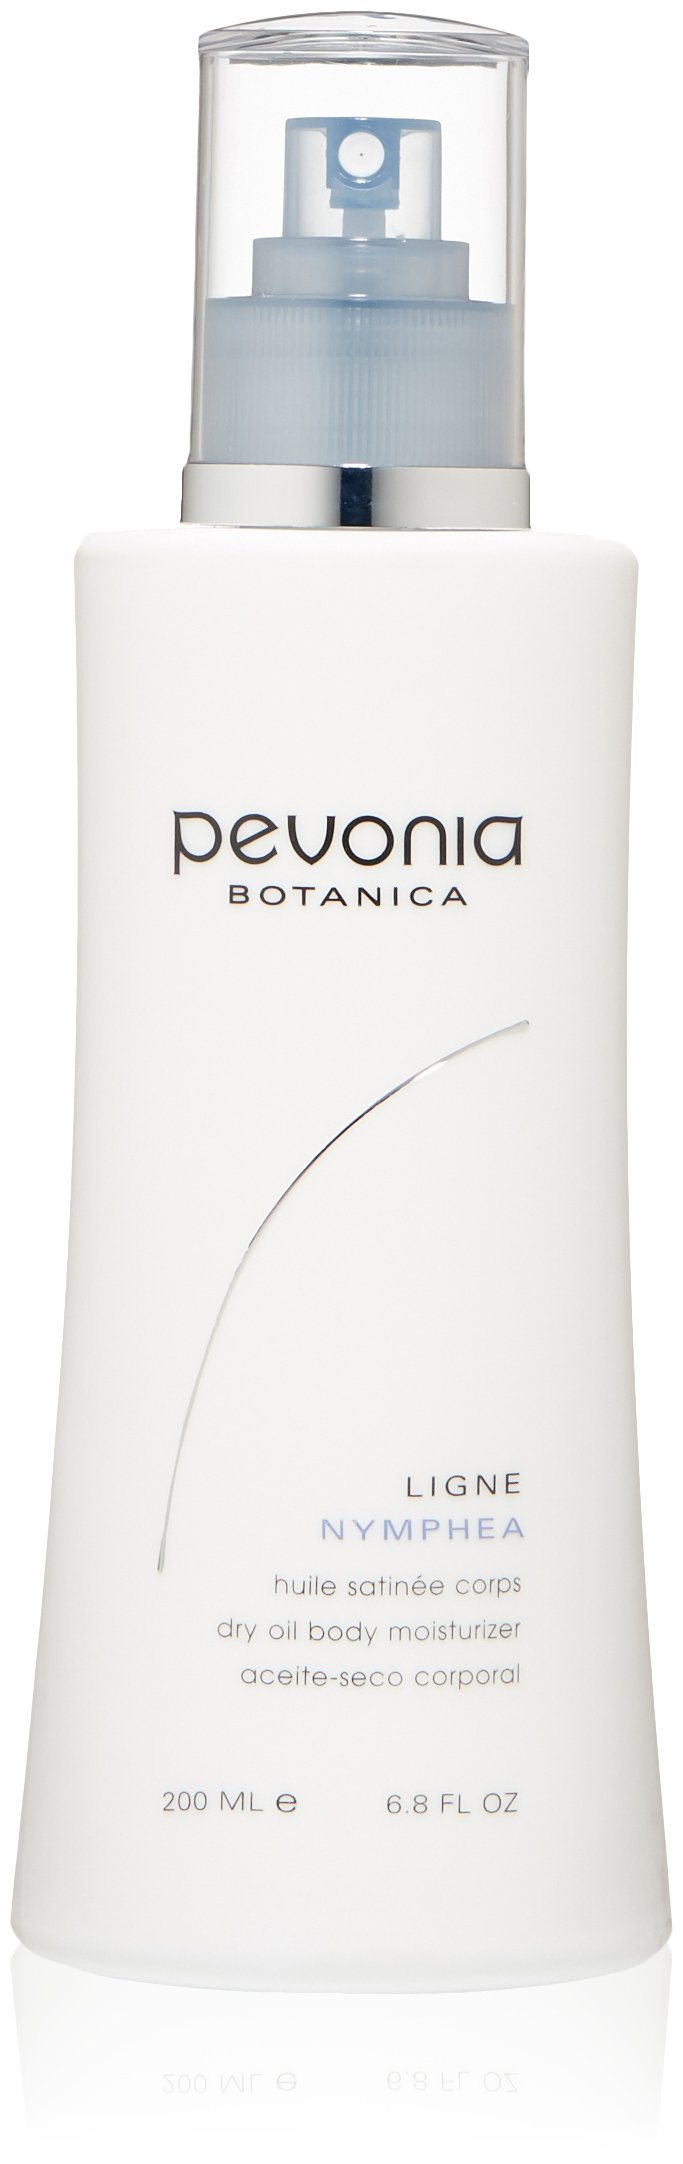 Pevonia Dry Oil Body Moisturizer-Ligne Nymphea, 6.8 Fl Oz